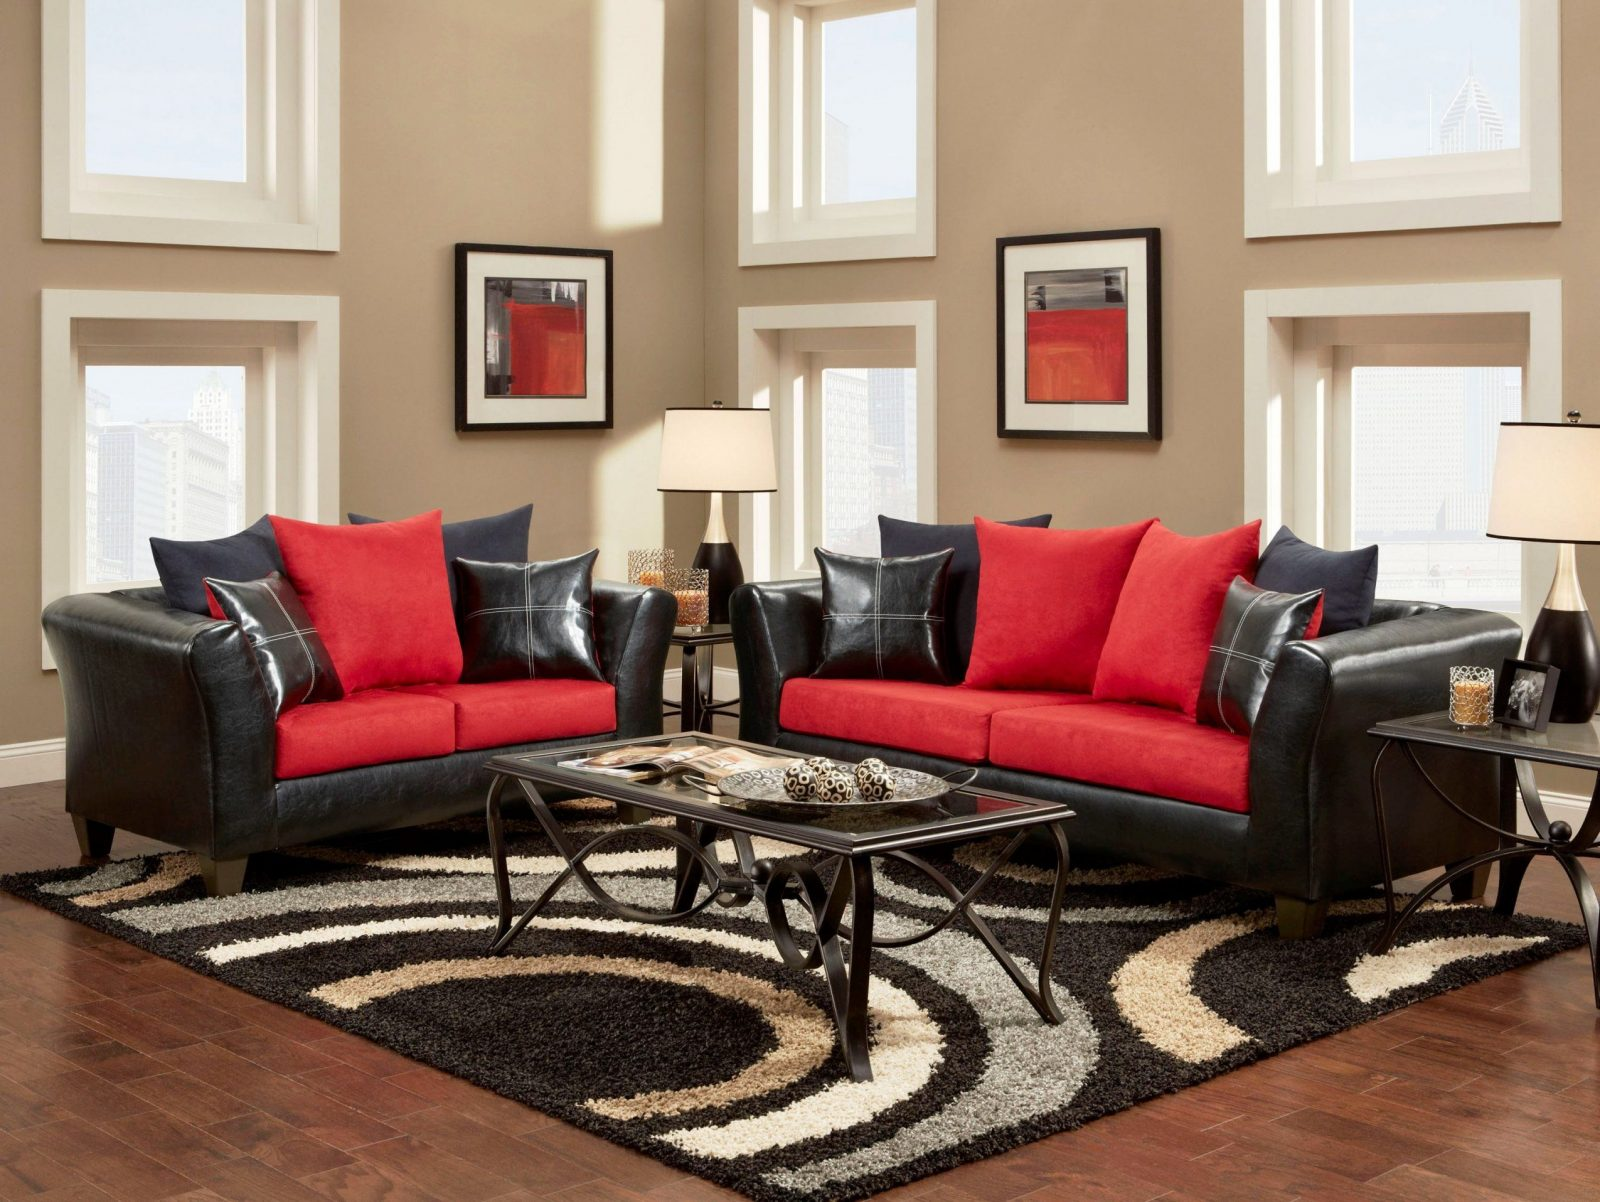 Livingroom  Excellent Red Black And White Living Room Ideas Theme von Red And Black Furniture Photo